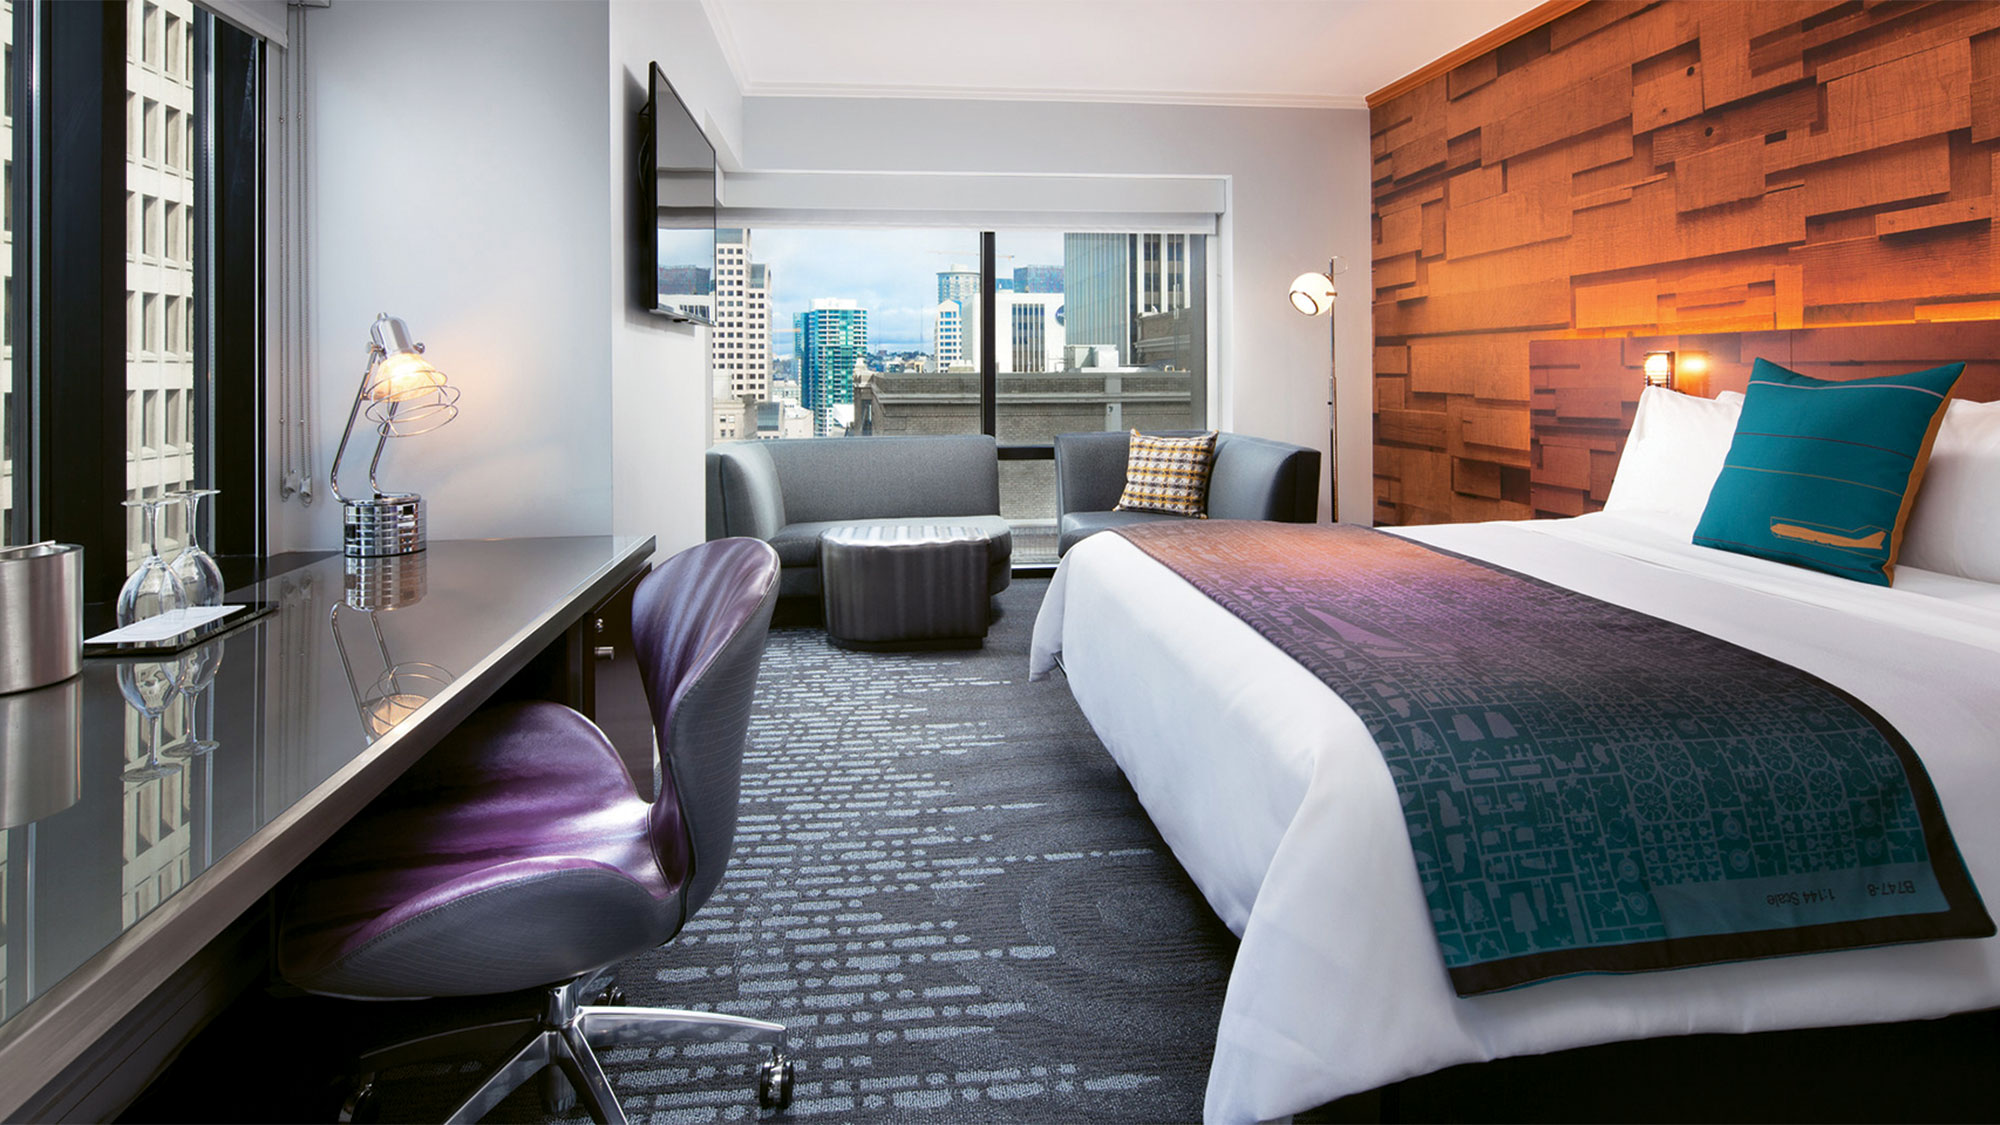 About To Turn 20 W Hotels Deals With Identity Issues Travel Weekly